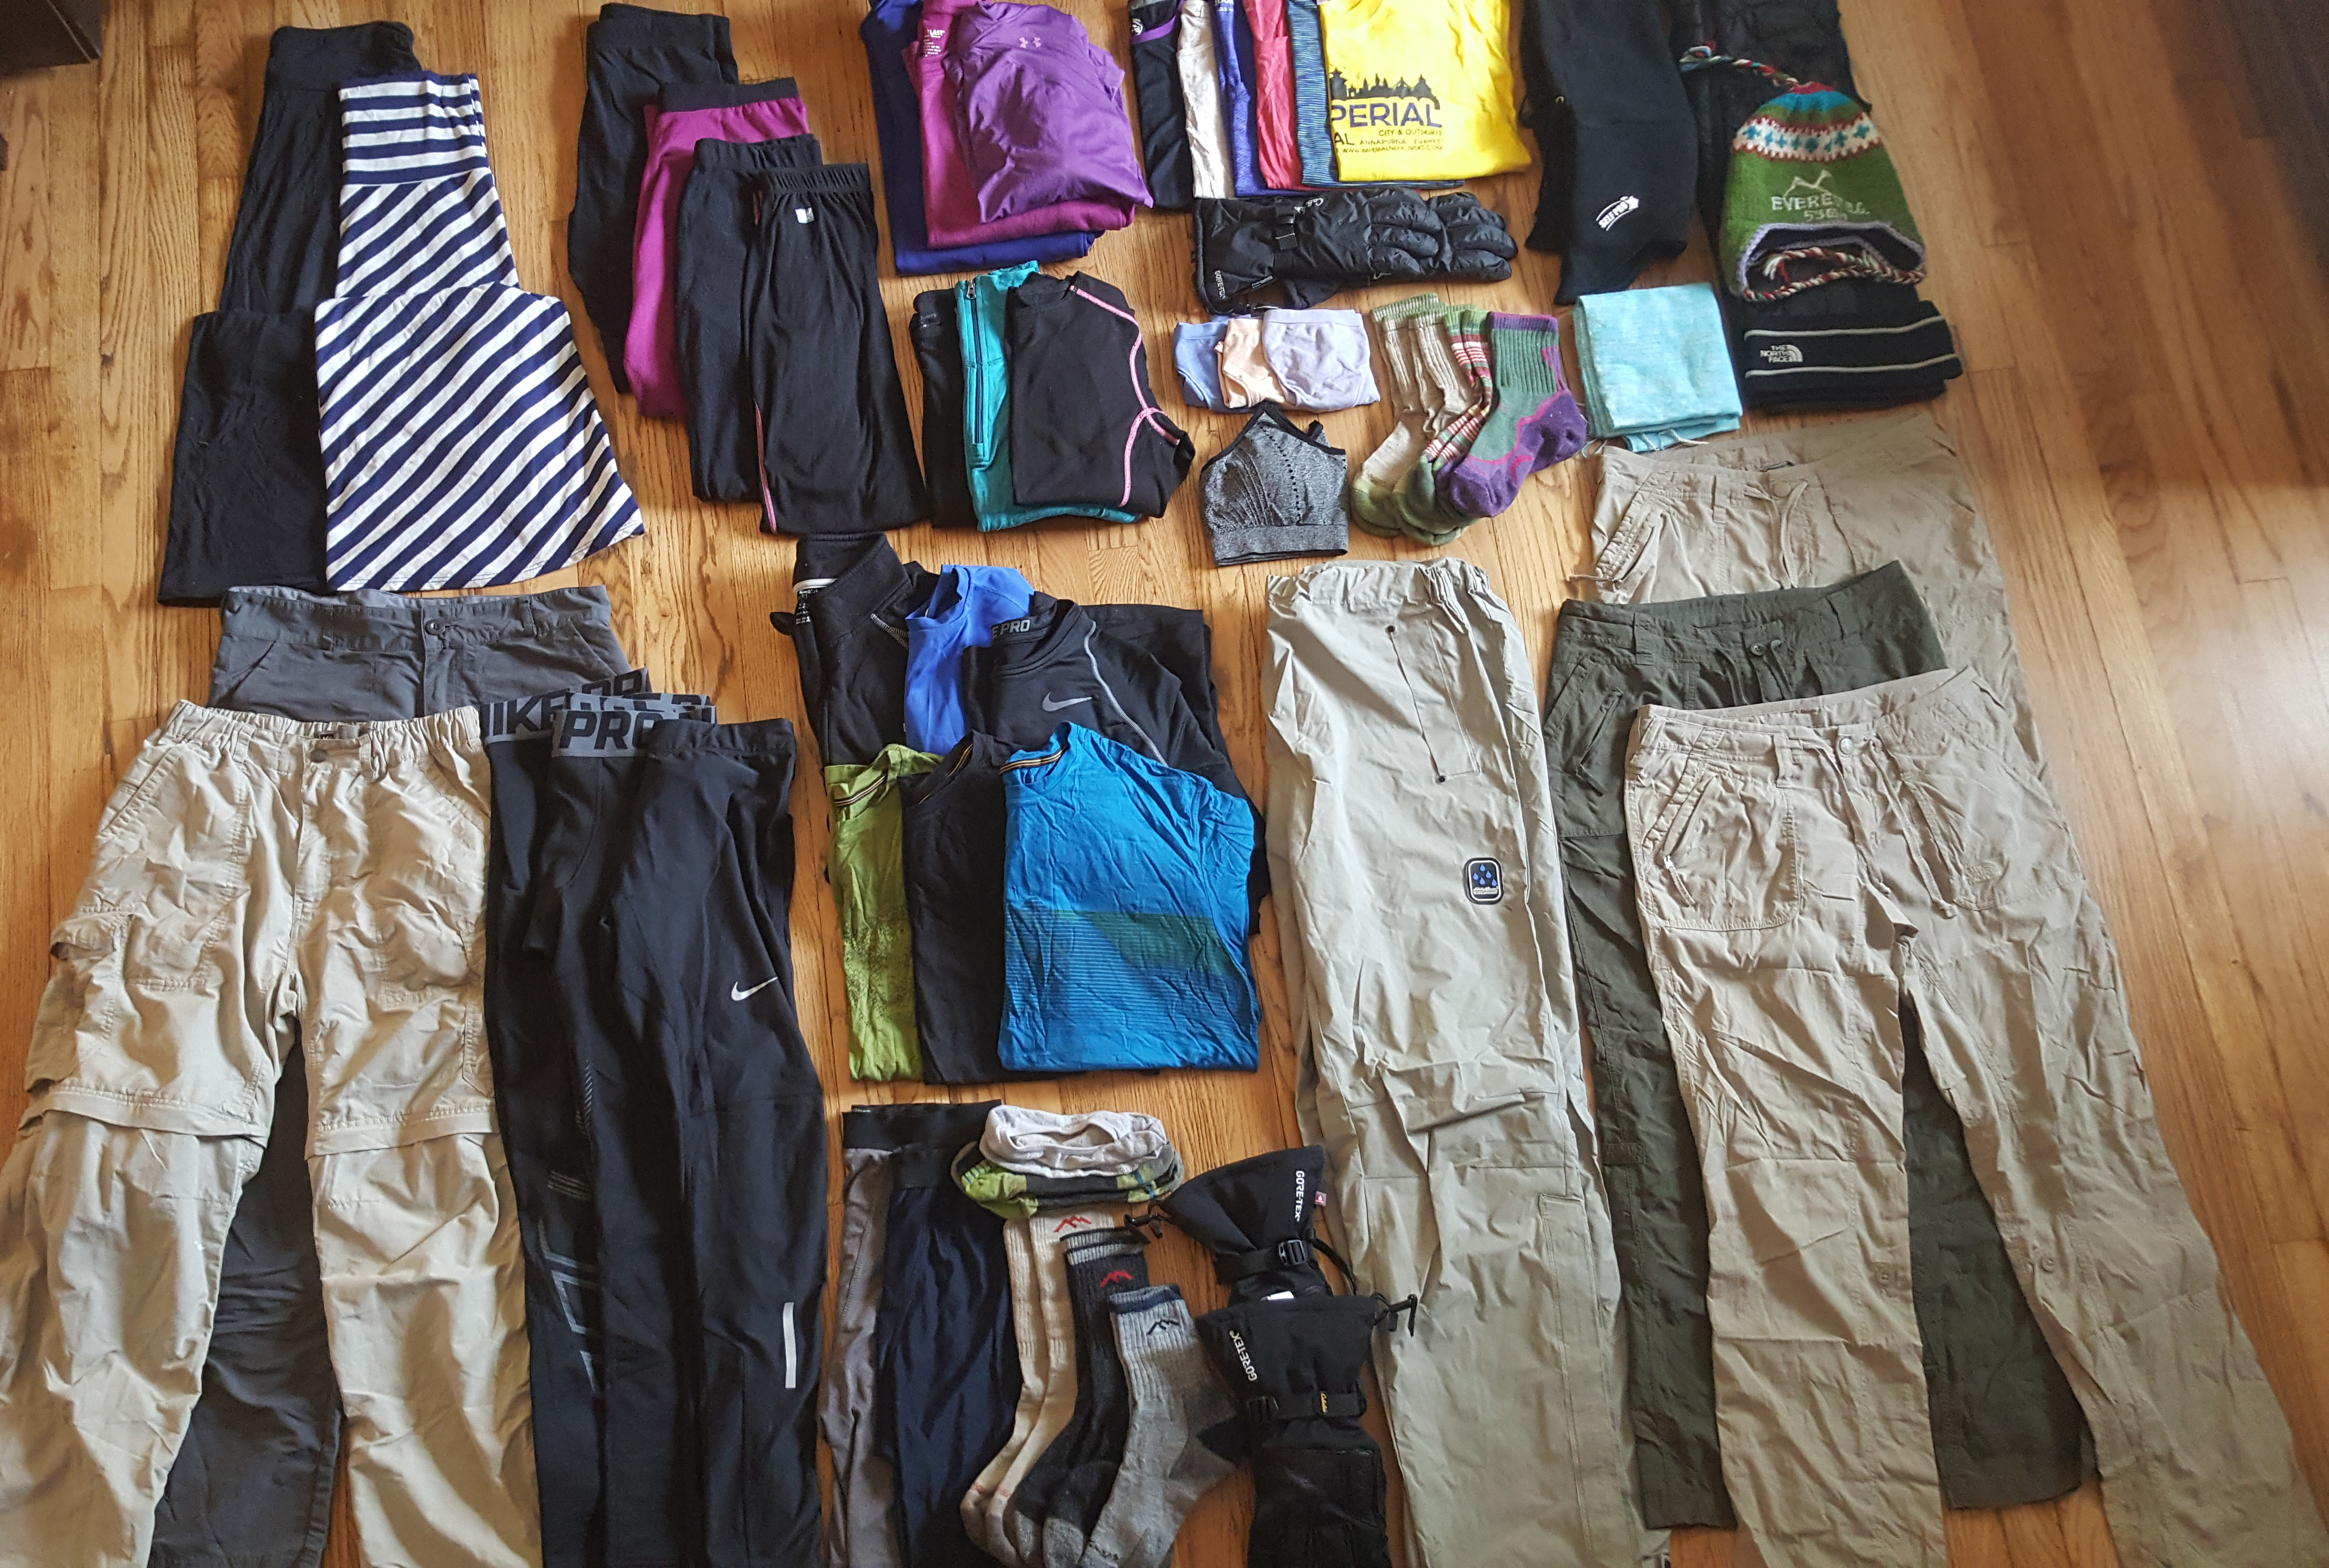 Clothing items laid out in an orderly fashion on the floor.